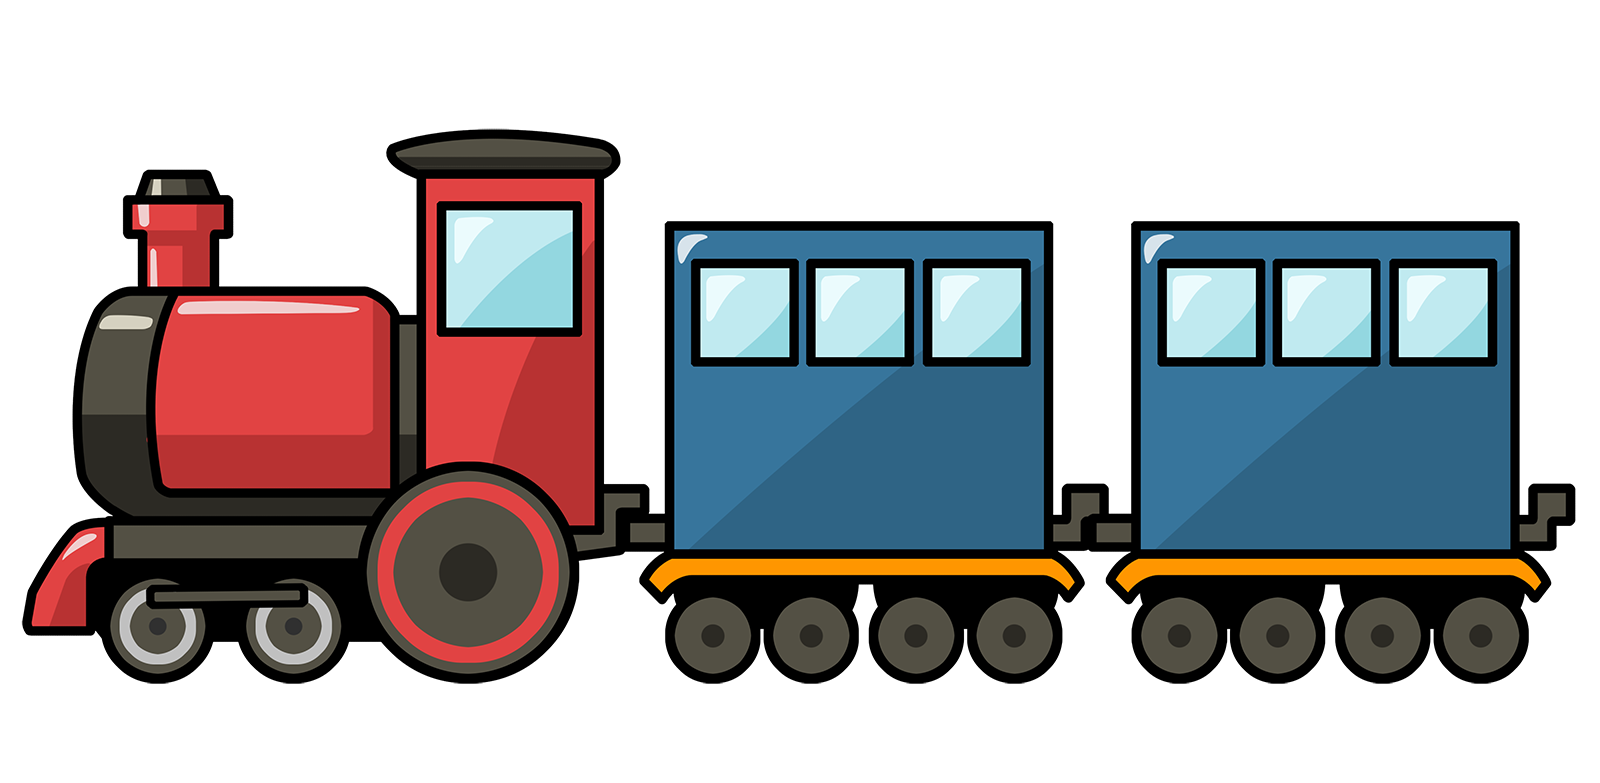 Clipart Toy Train Free Pictures image #31610